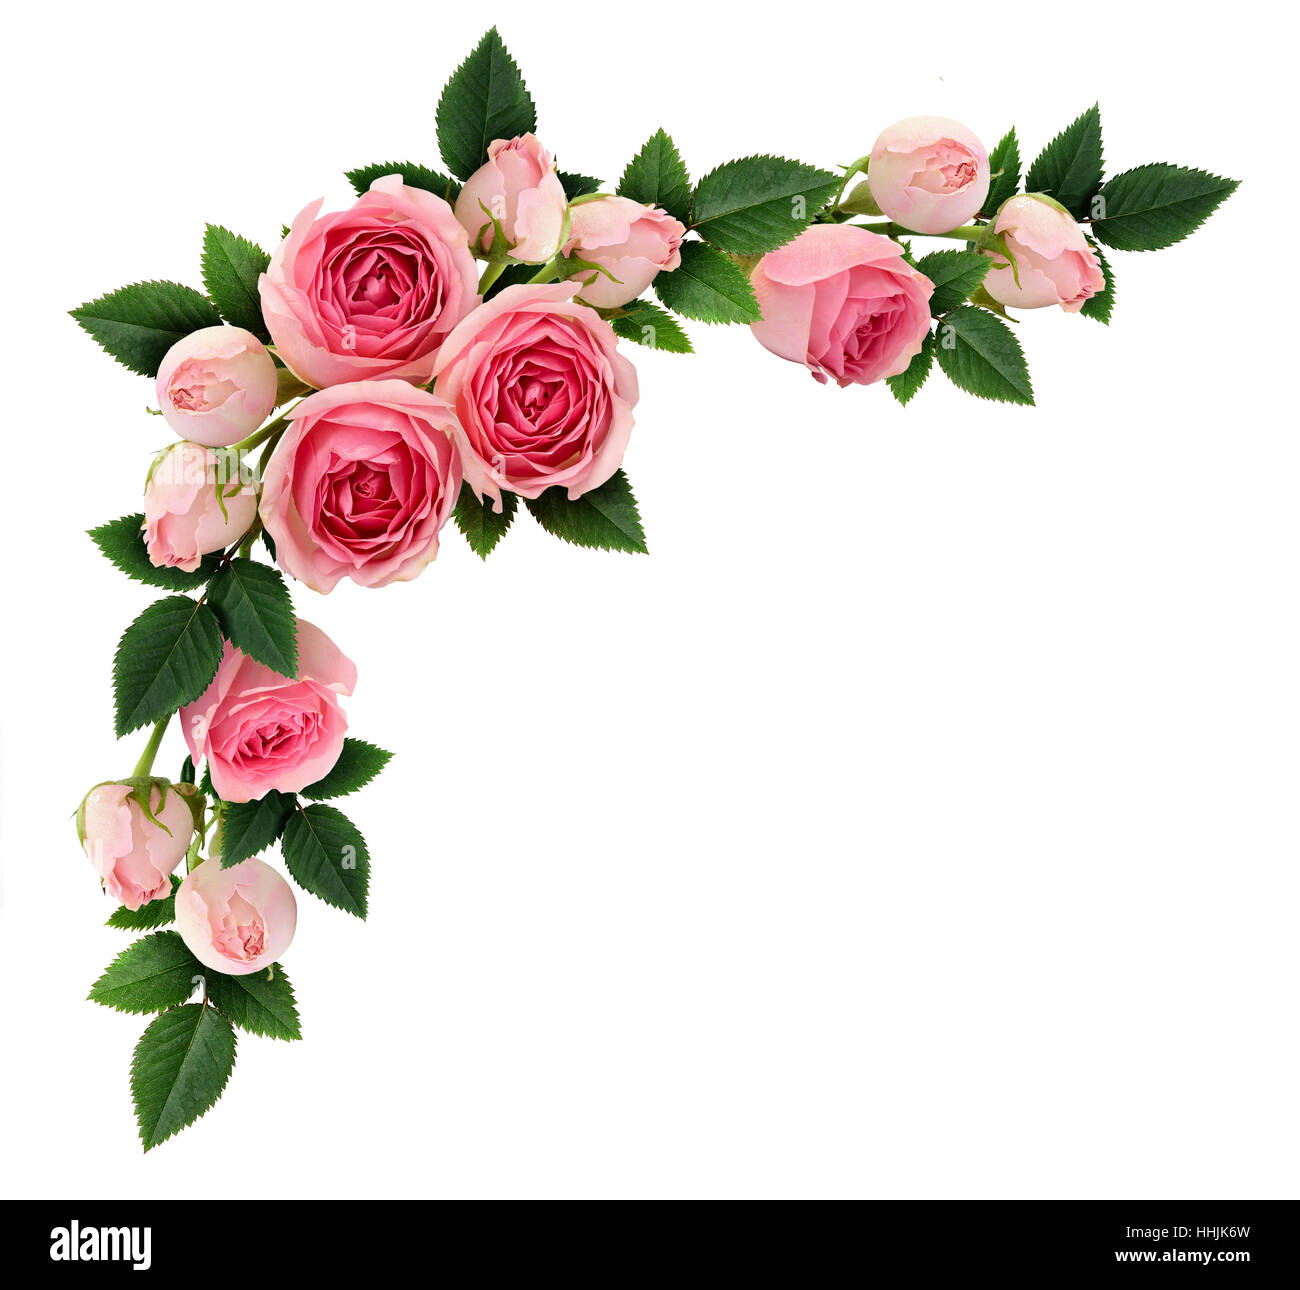 pink rose flowers and buds corner arrangement isolated on